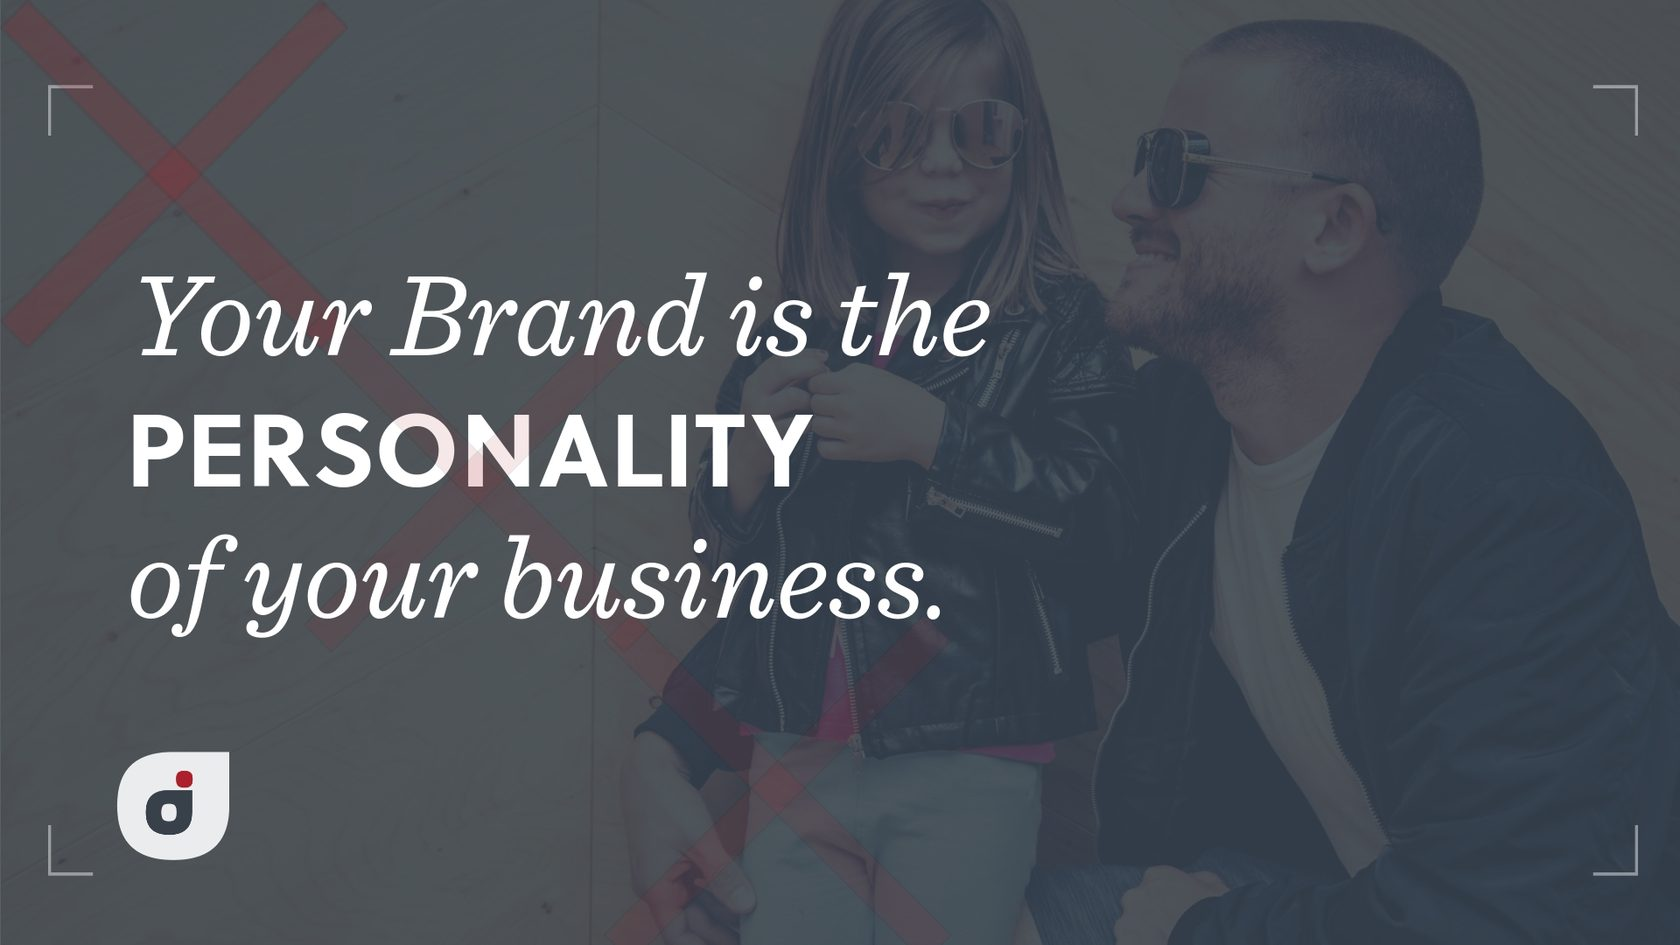 Your brand is like the personality of your business